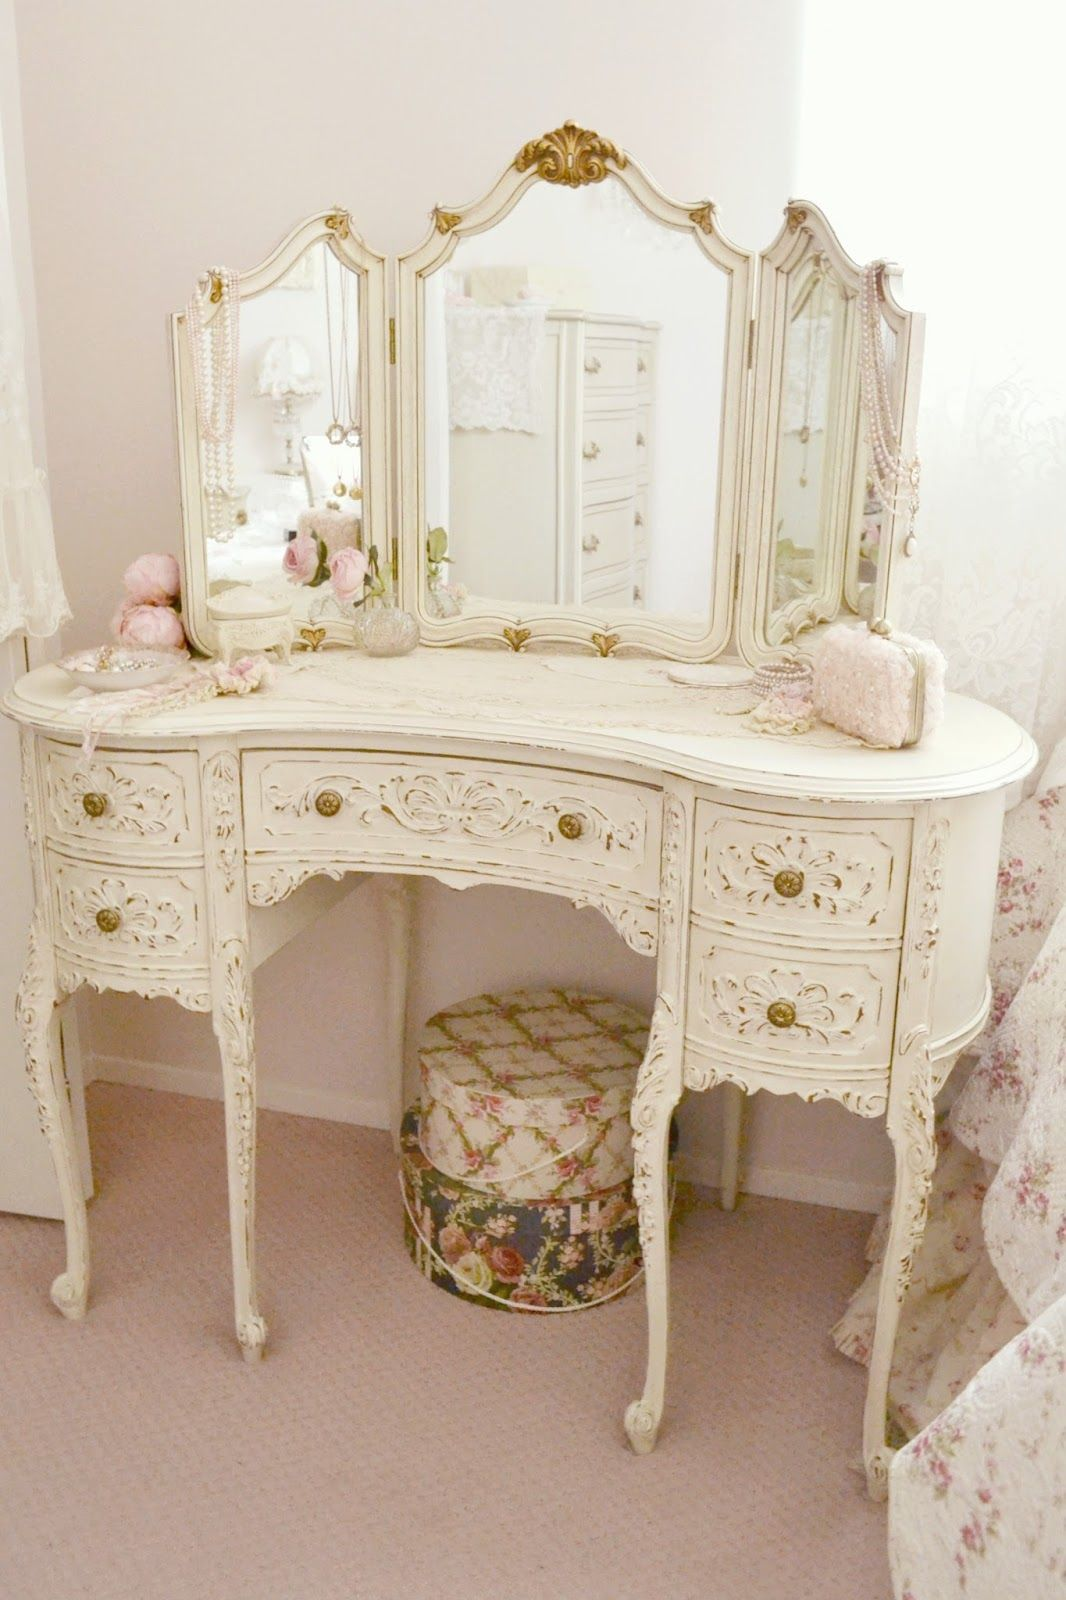 Chambre Style Shabby Chic ❤°(¯`☆´¯)shabby chic(¯`☆´¯)°❤jennelise | vanity